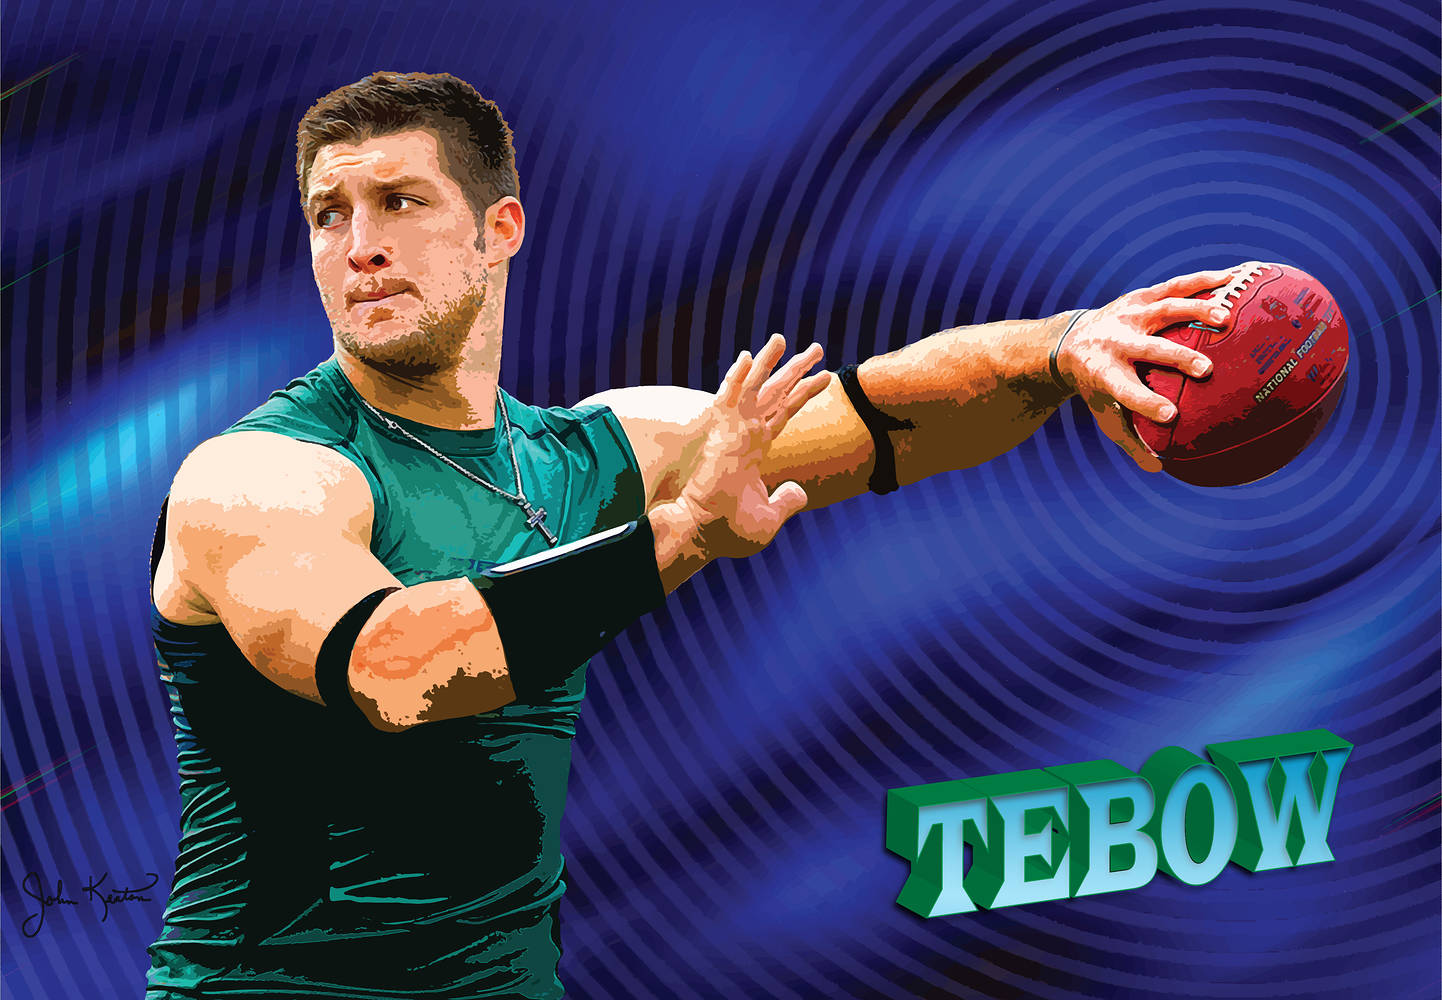 Tim Tebow by John Keaton